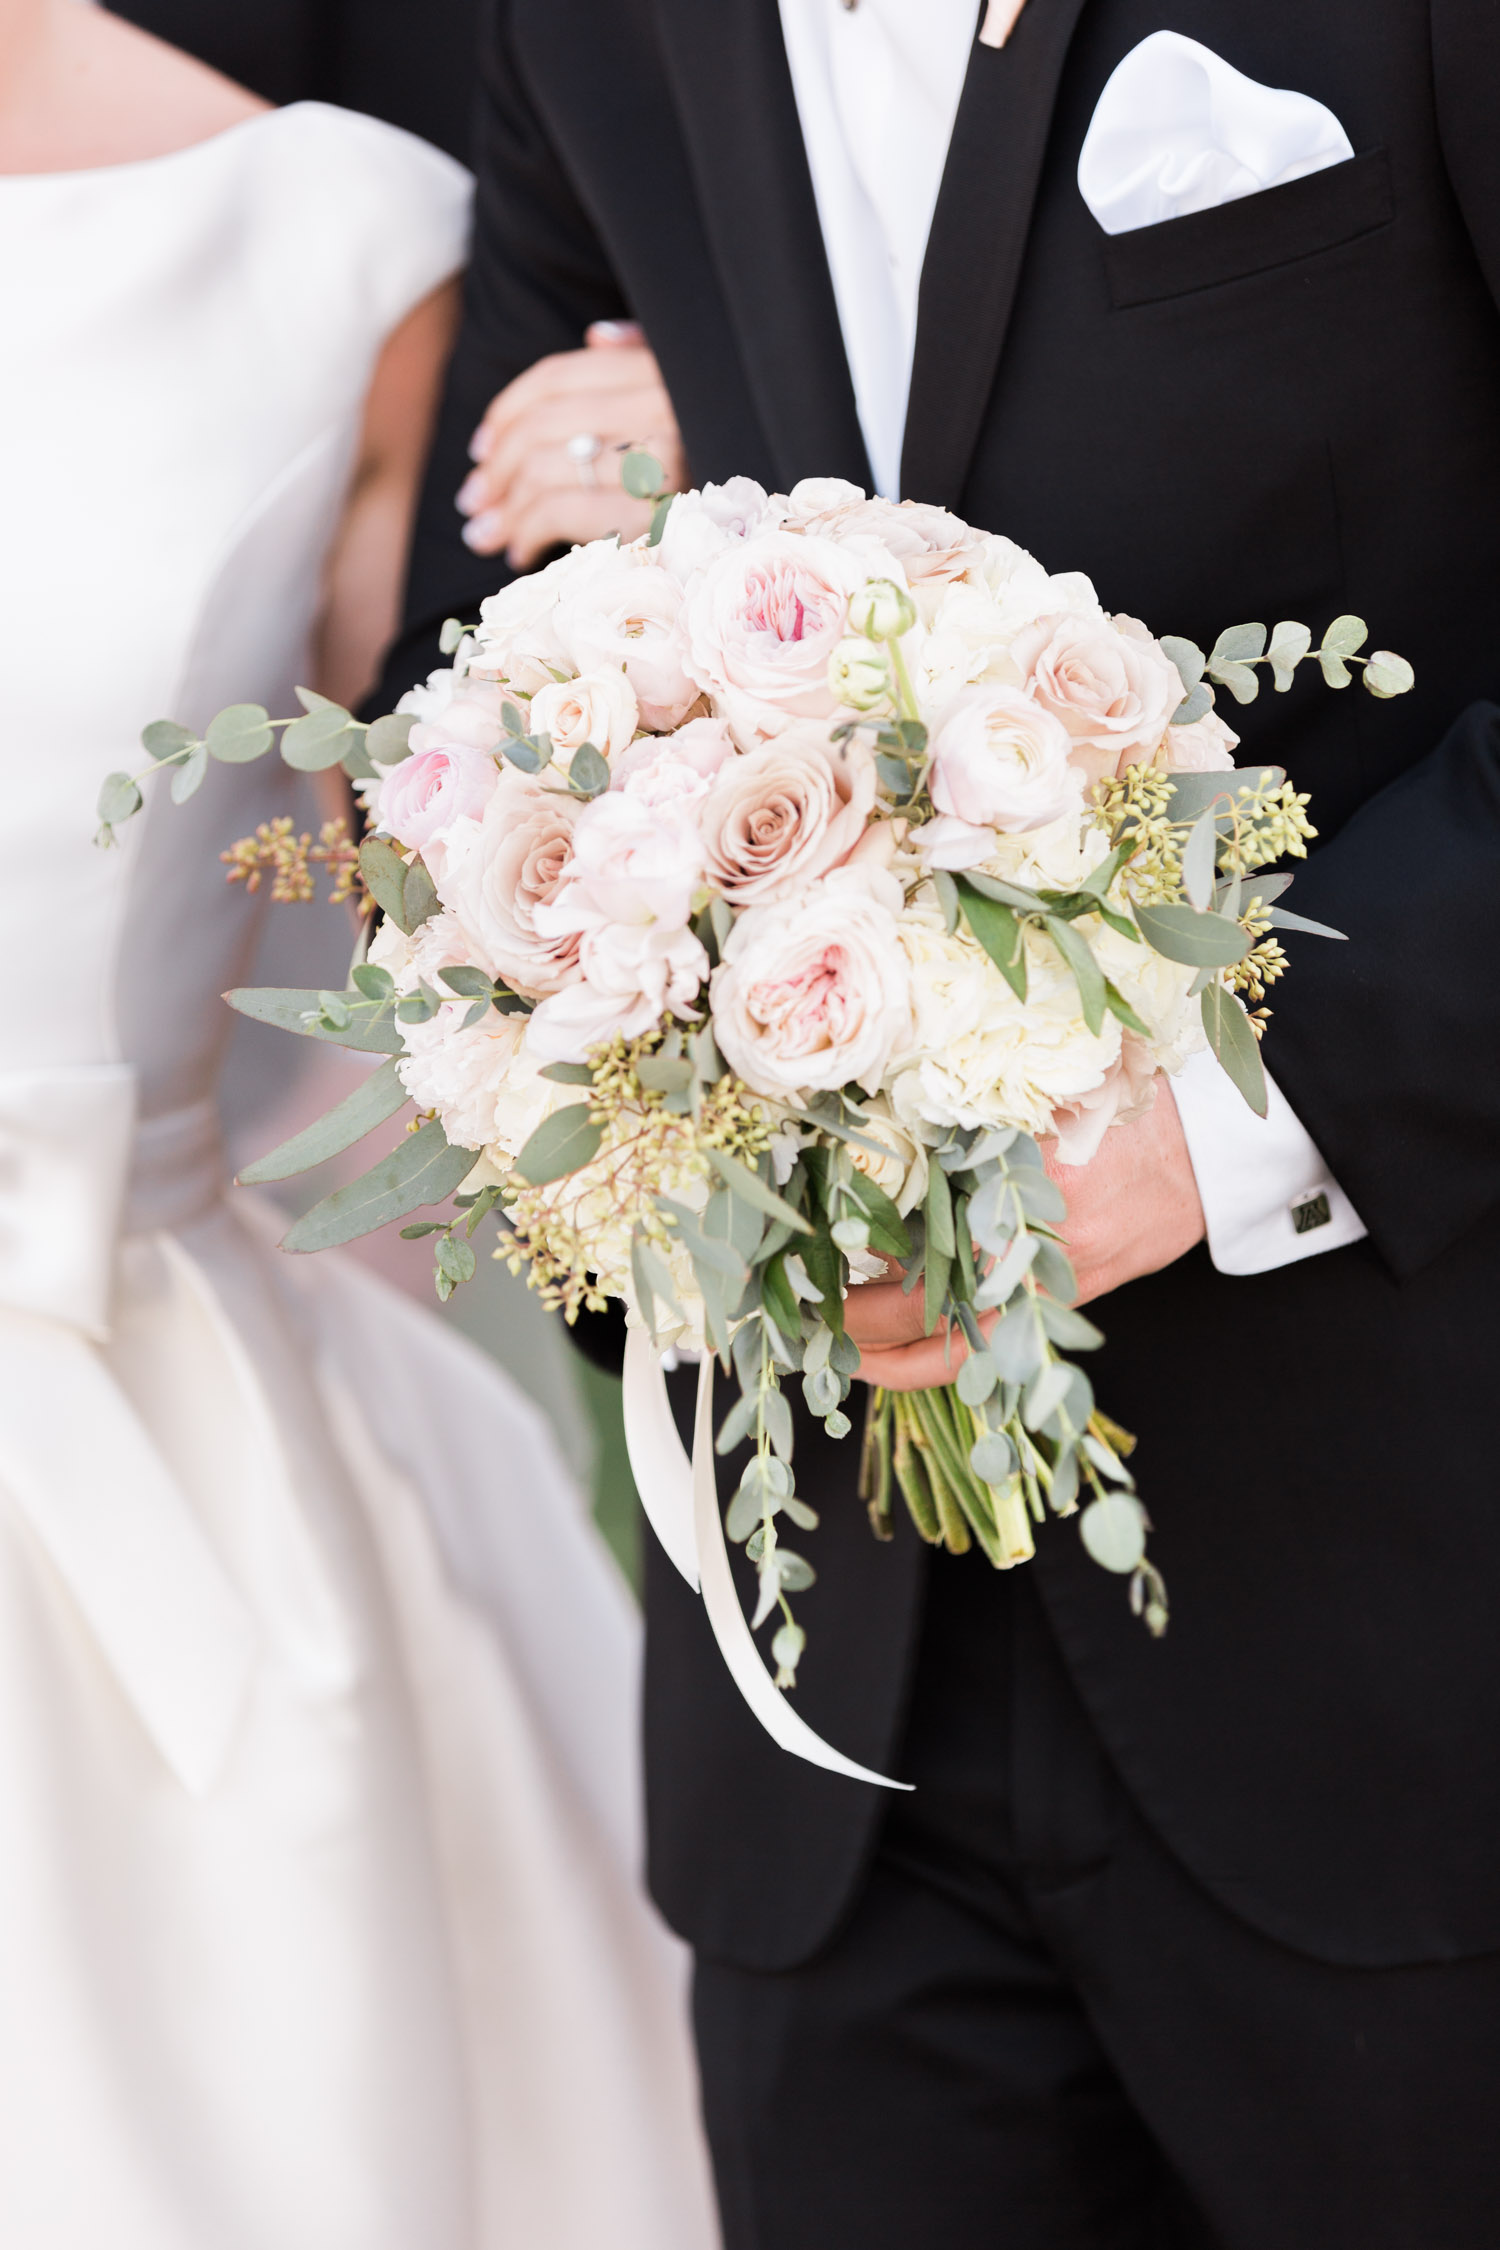 Beautiful blush and white bridal bouquet by Posh Petals